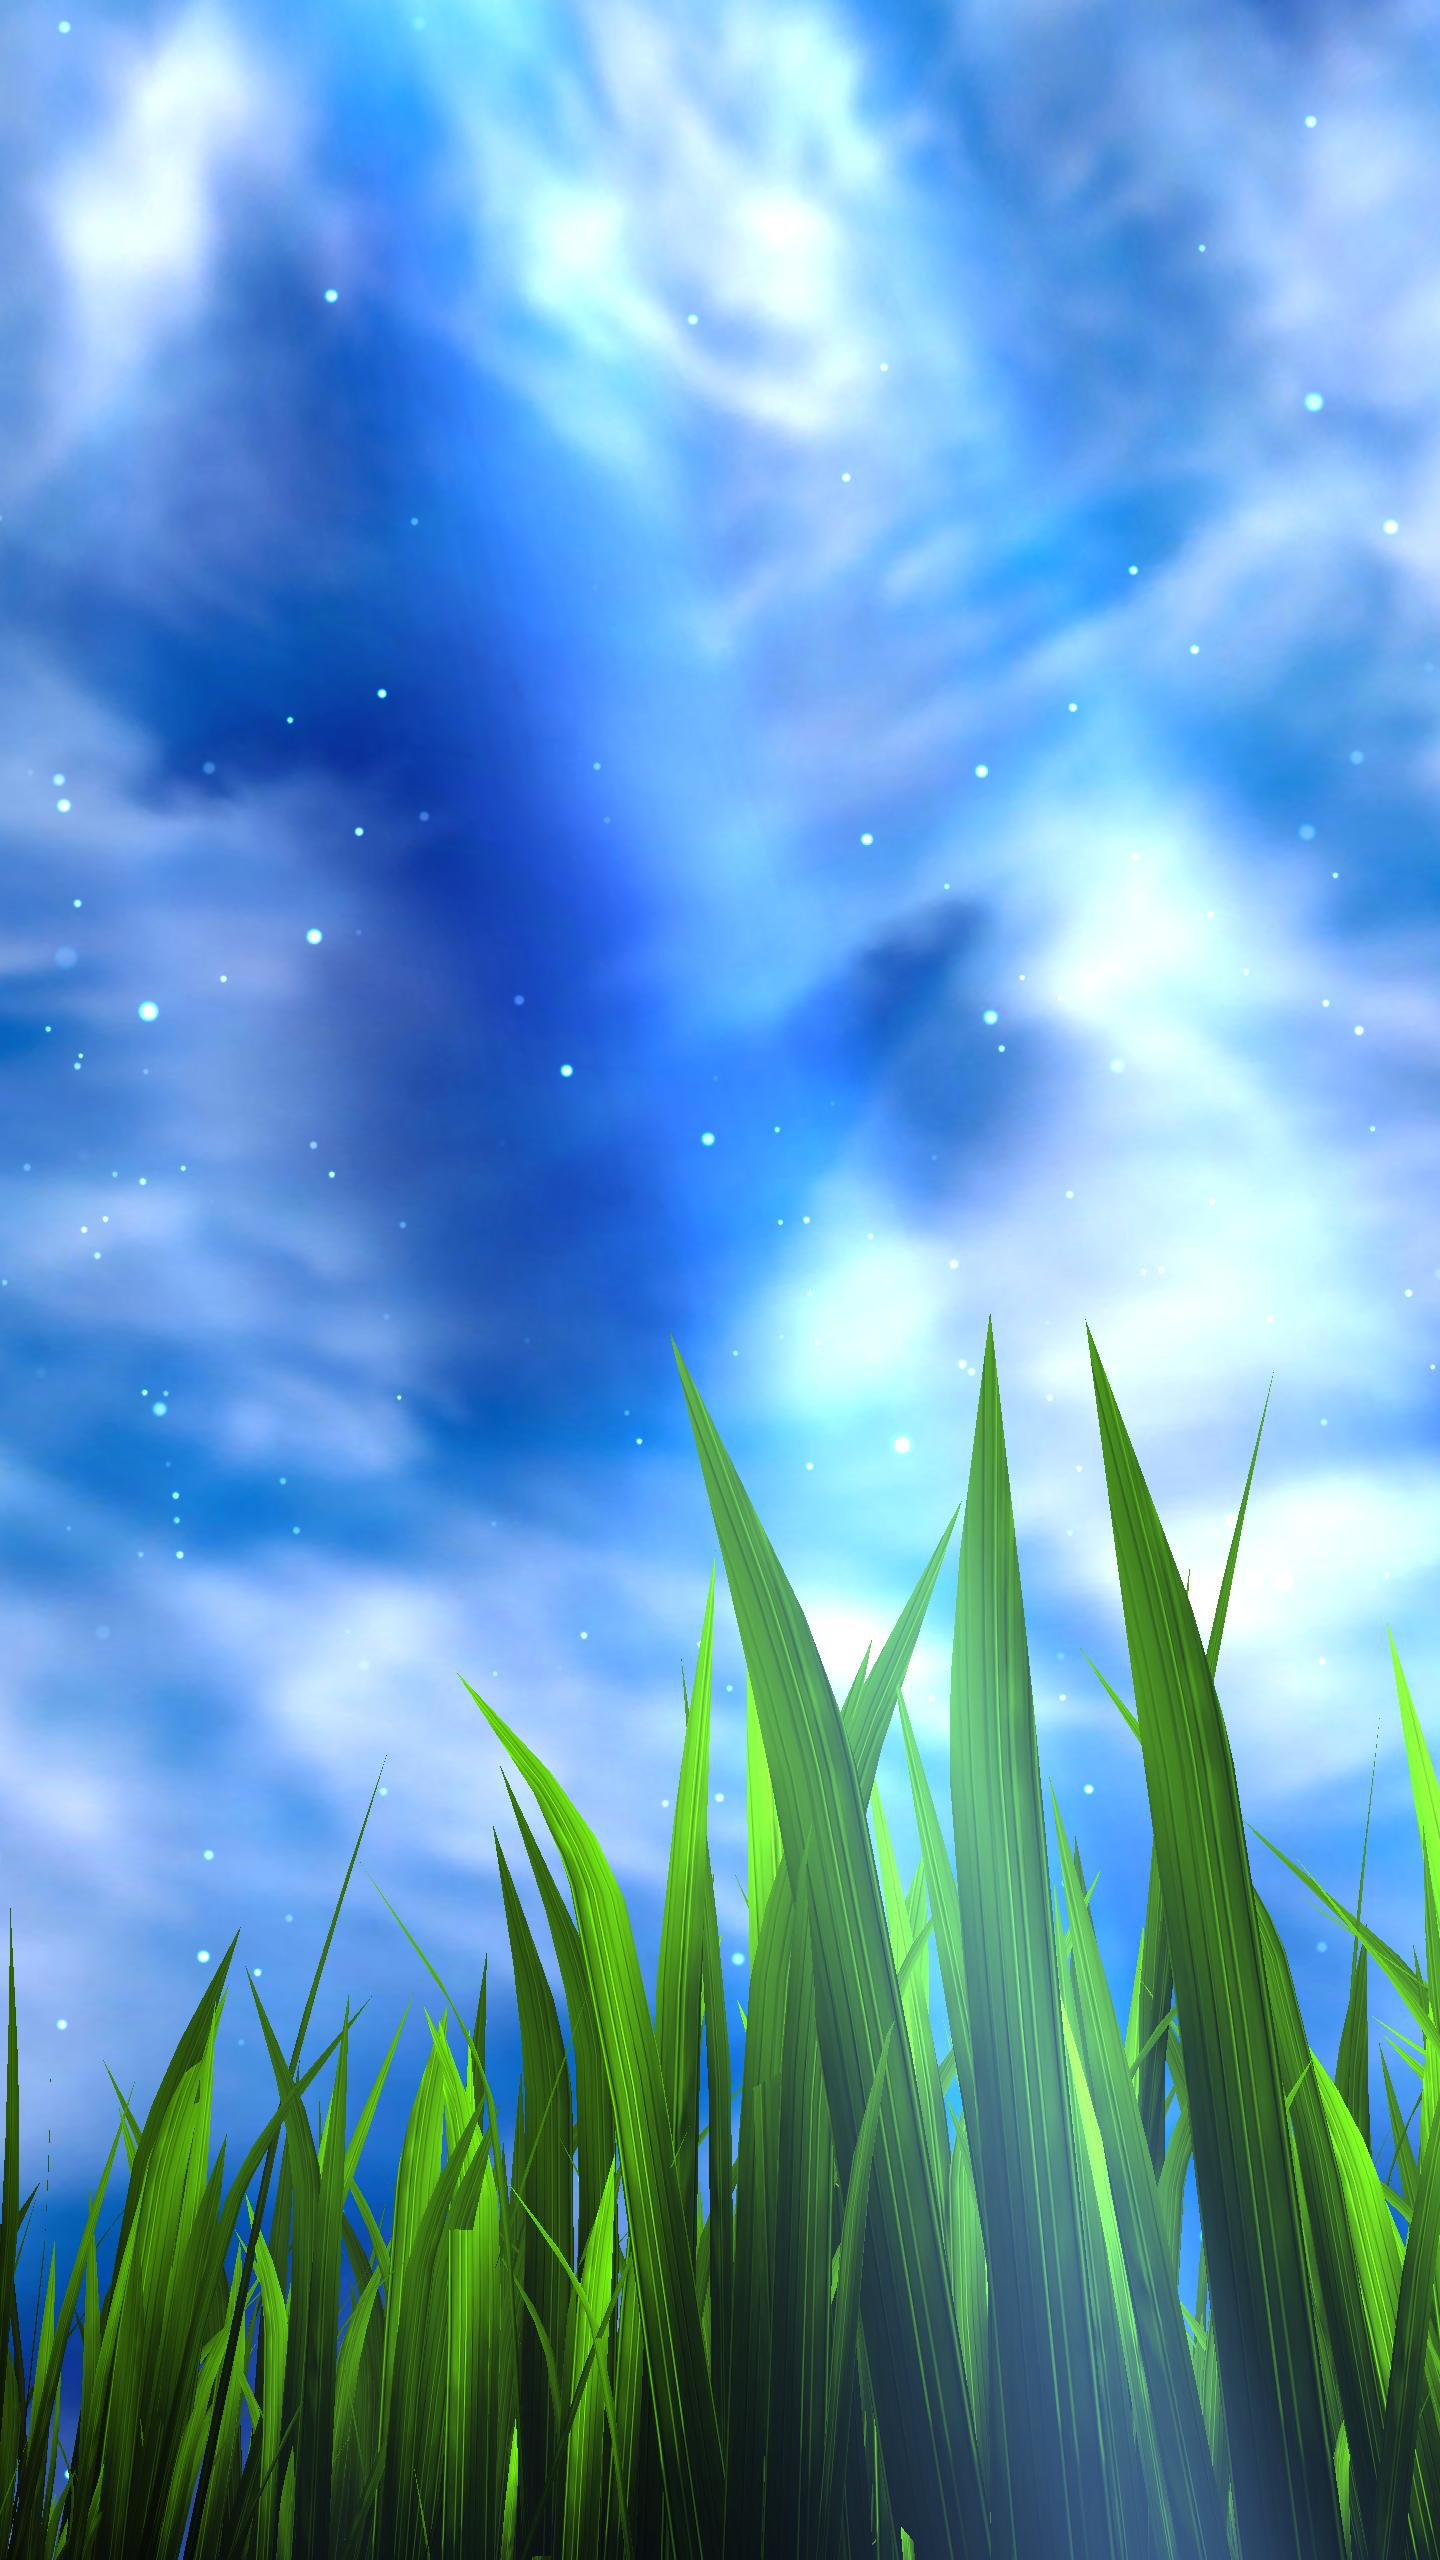 3D GRASS Live Wallpaper for Android - APK Download